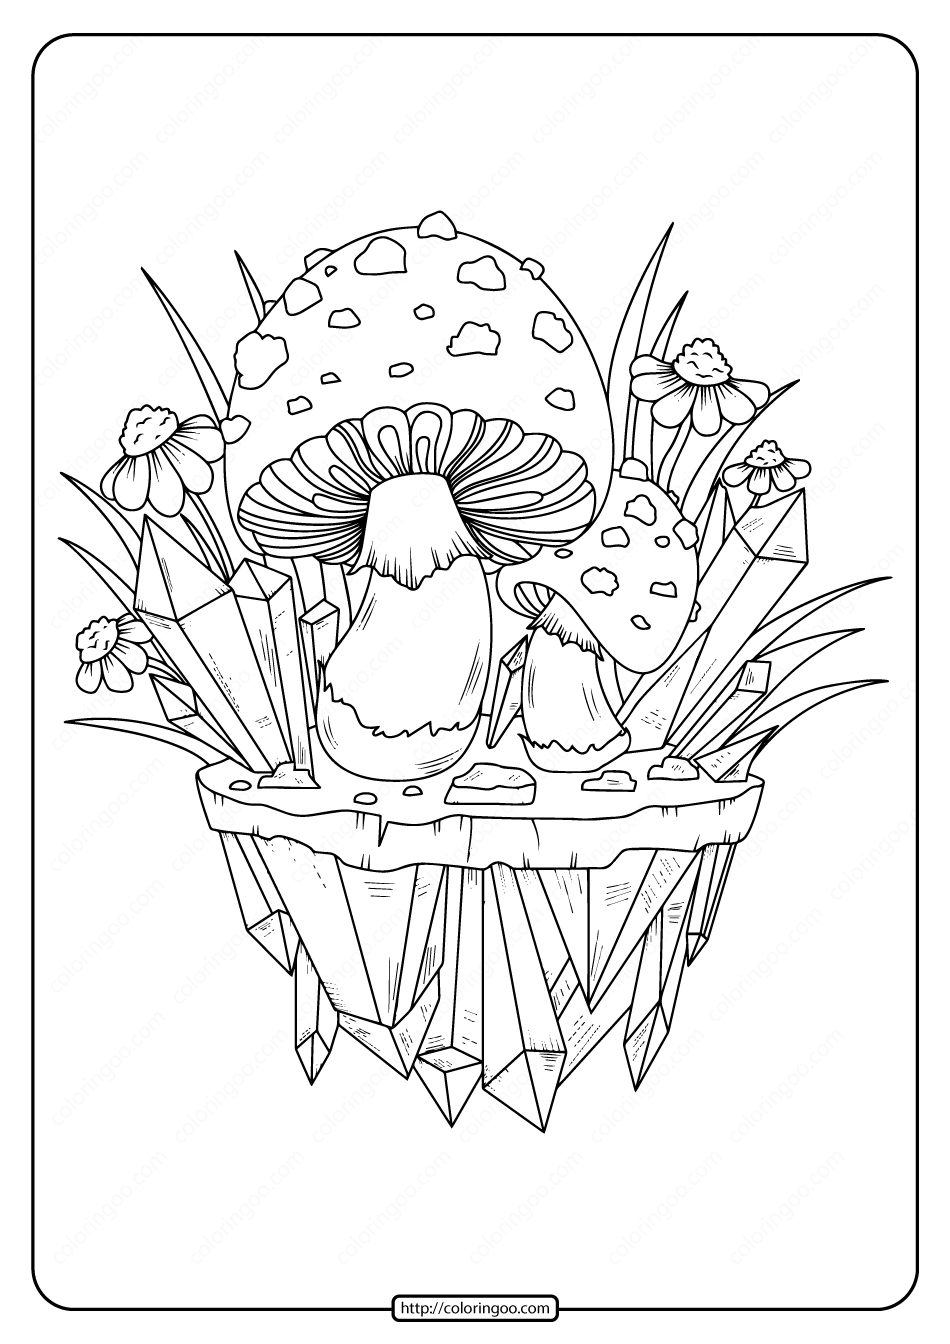 Printable Mushrooms Adult Coloring Page - 02